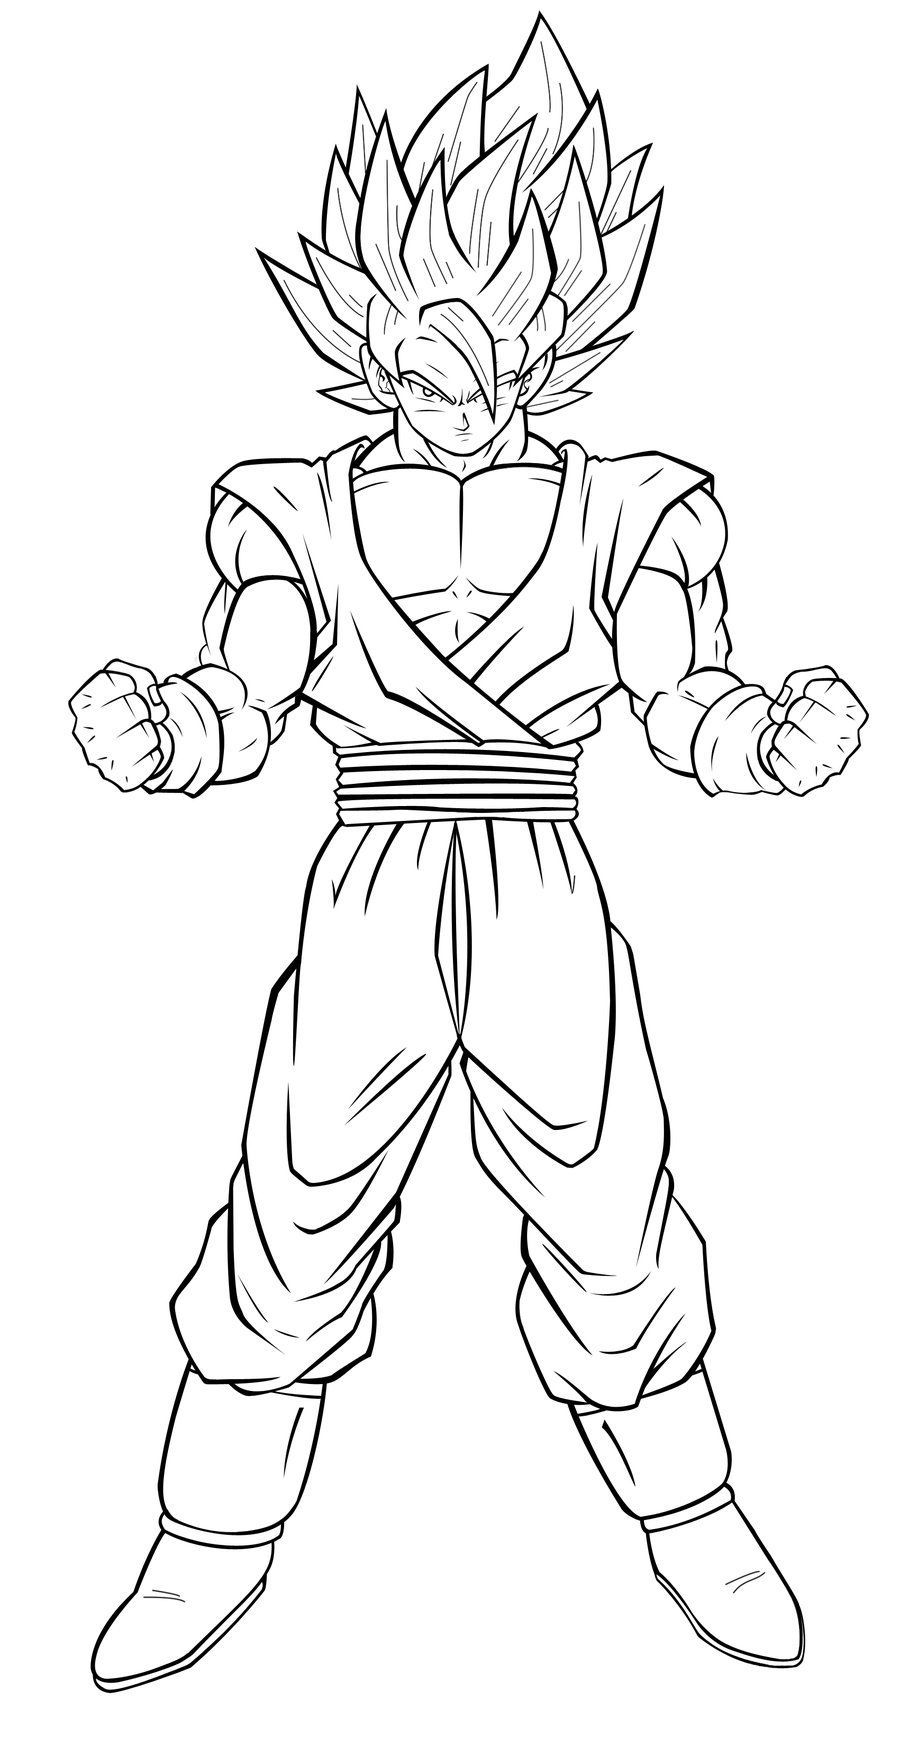 dragon ball z coloring pages goku - Dragon Ball Z Coloring Pages